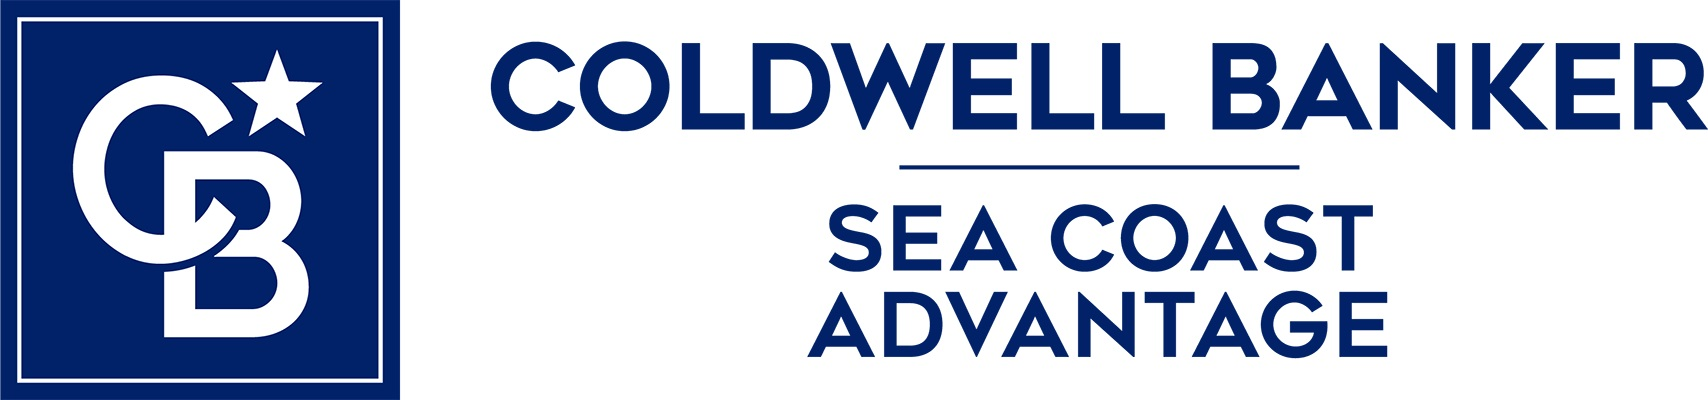 Mary Blake - Coldwell Banker Sea Coast Advantage Realty Logo